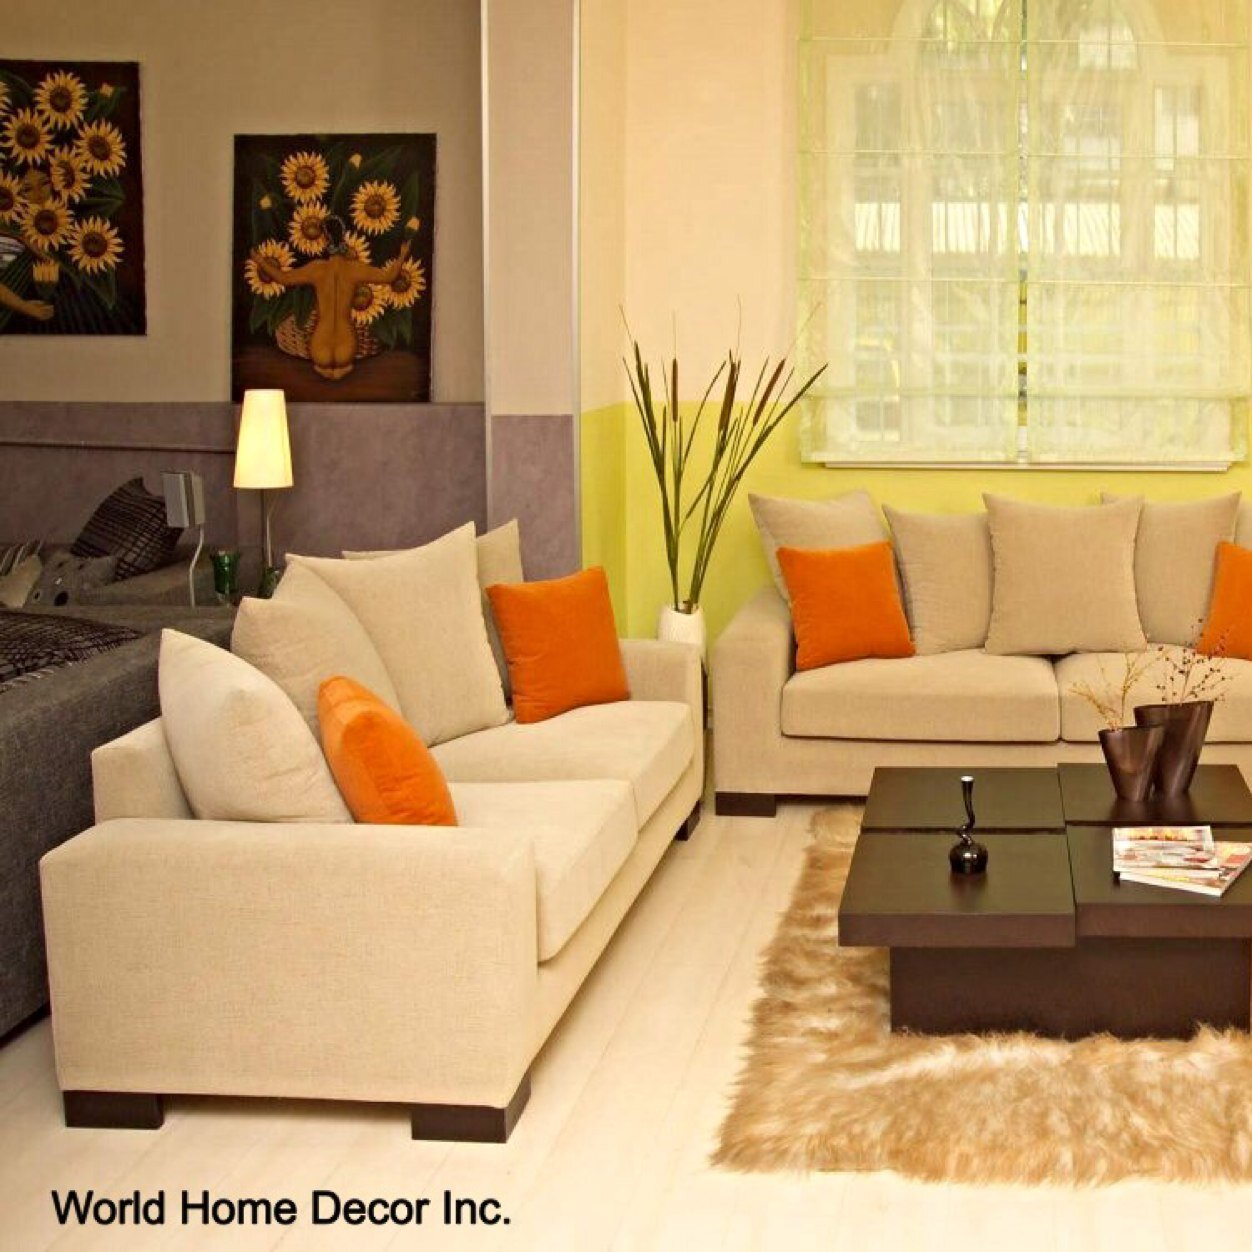 World Home Decor Inc